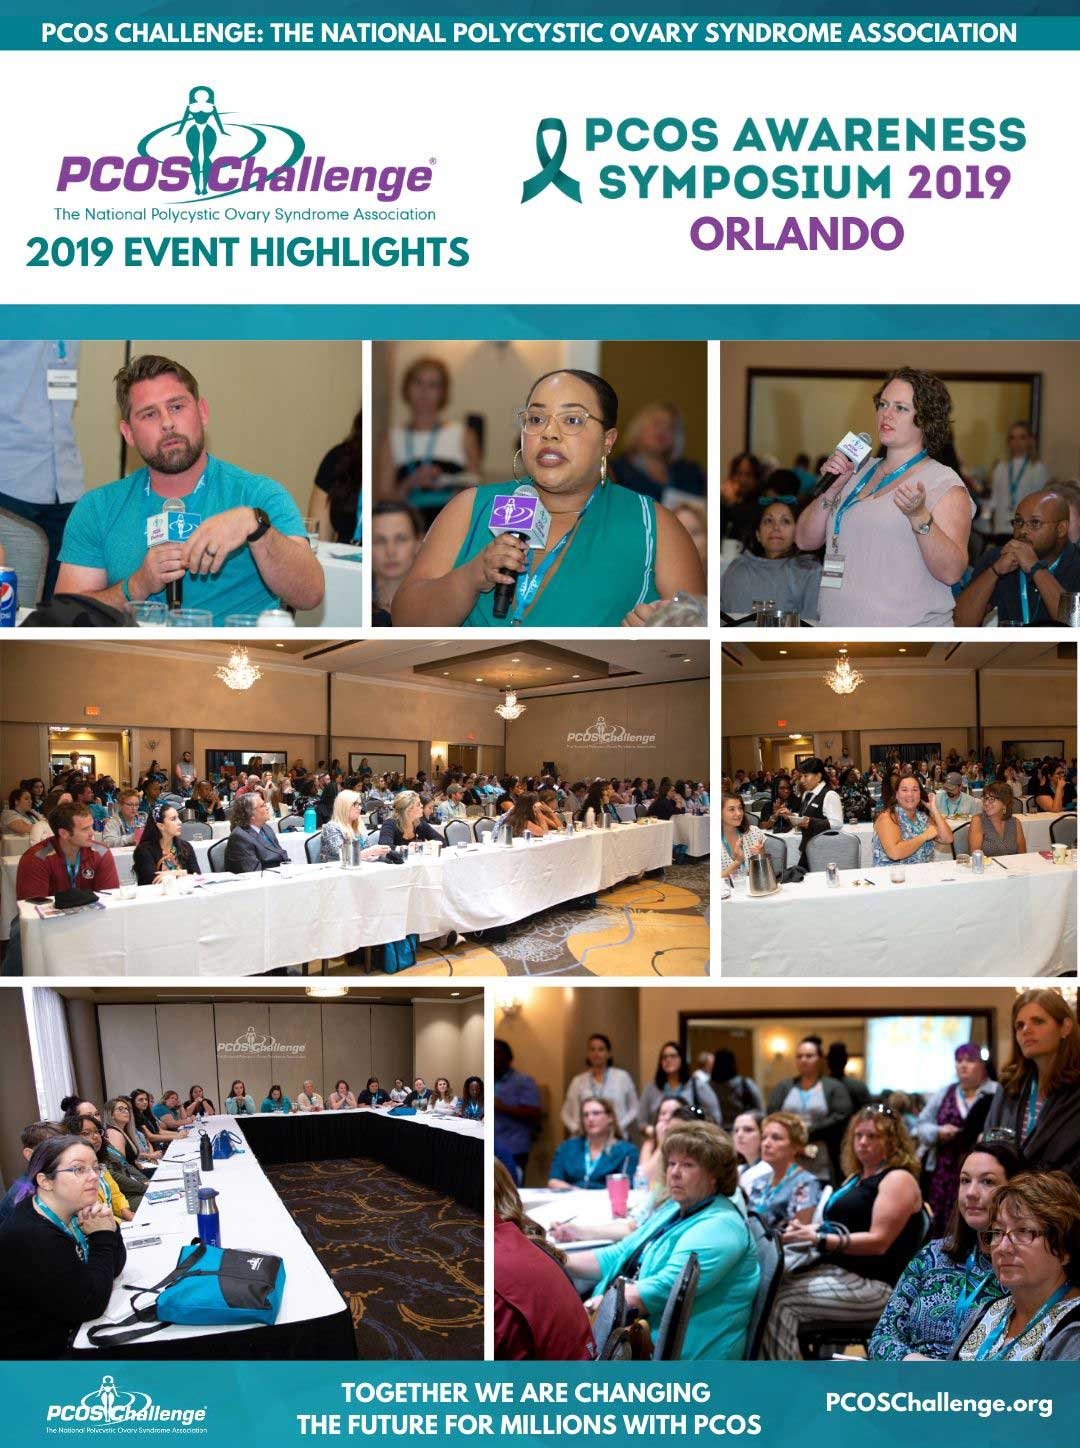 PCOS Awareness Symposium 2019 - Orlando